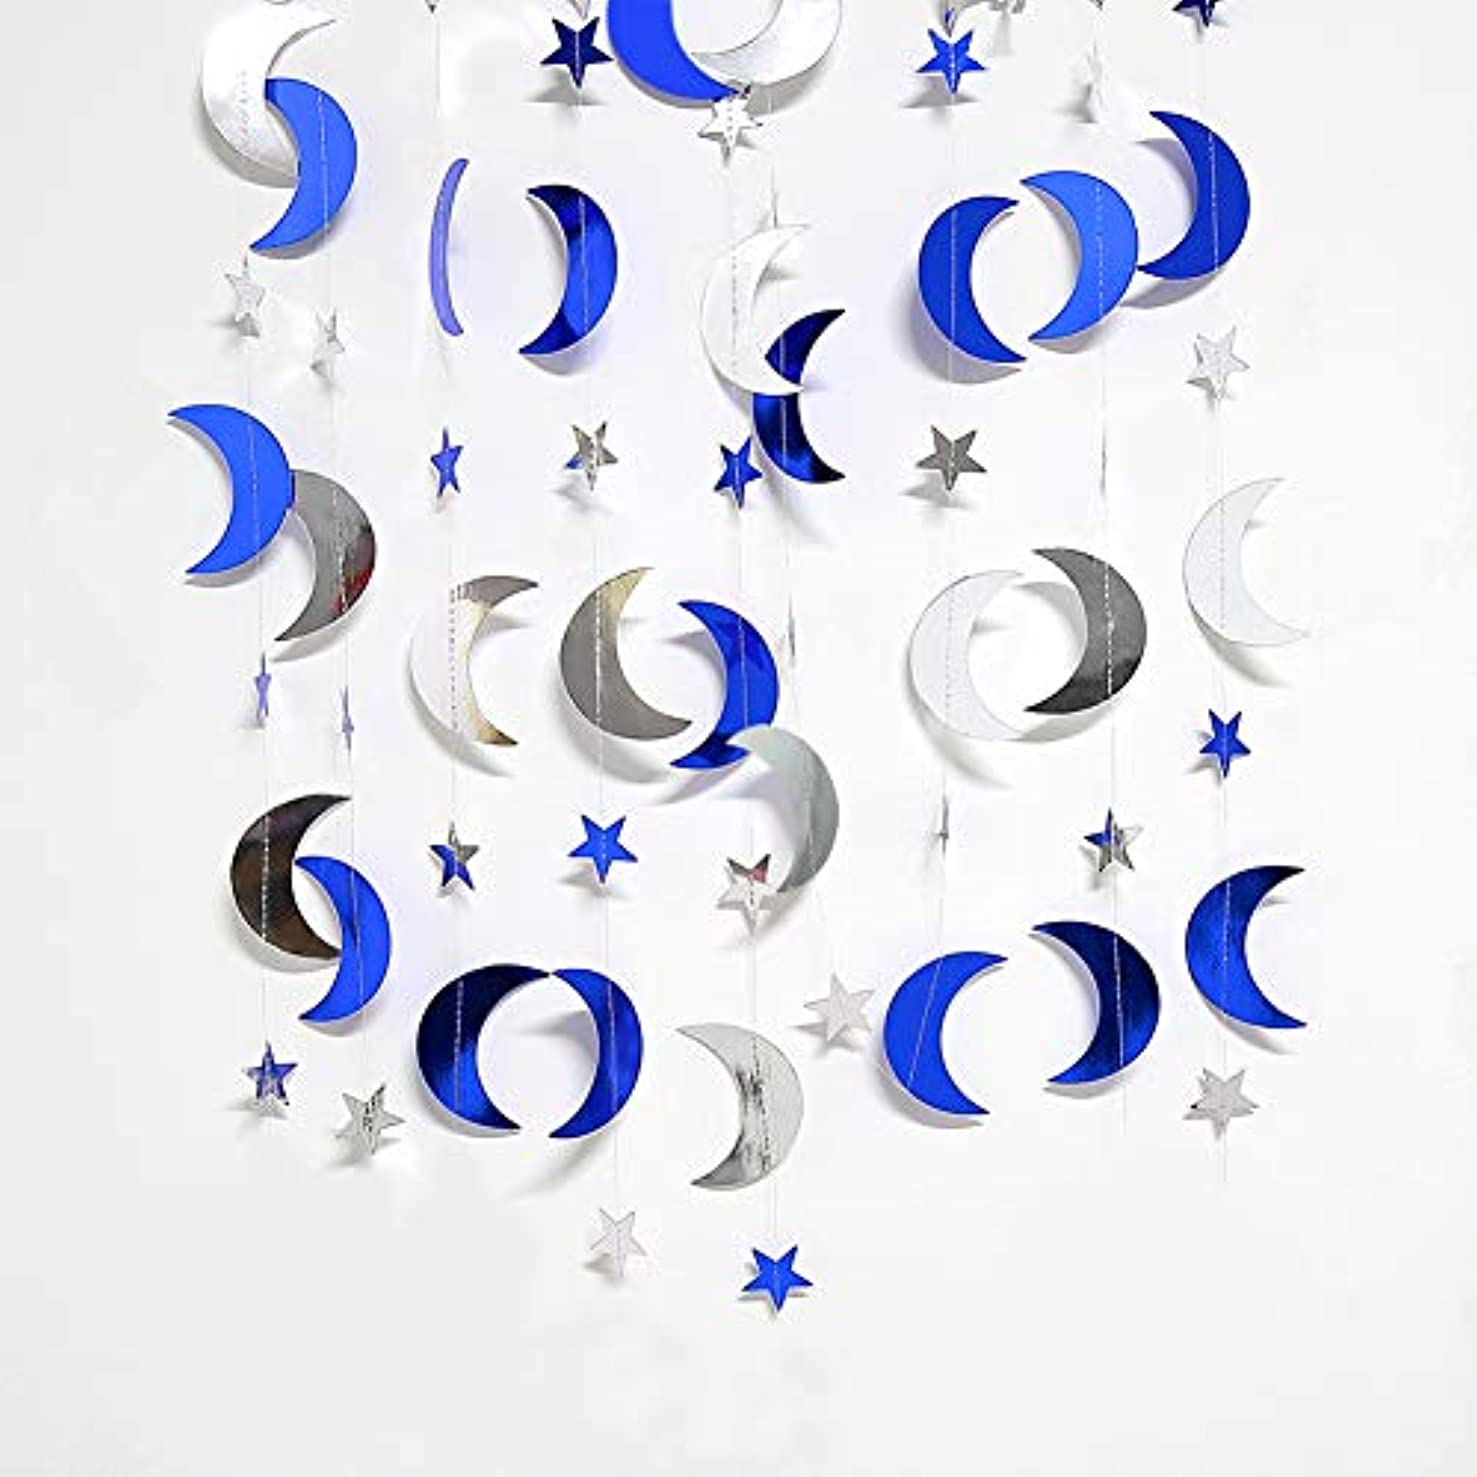 Reflective Glitter Star and Moon Garland Kit Star Garands/Streamers/Bunting Banner for Party Hanging Decoration … (Blue Star Moon Garland Kit)